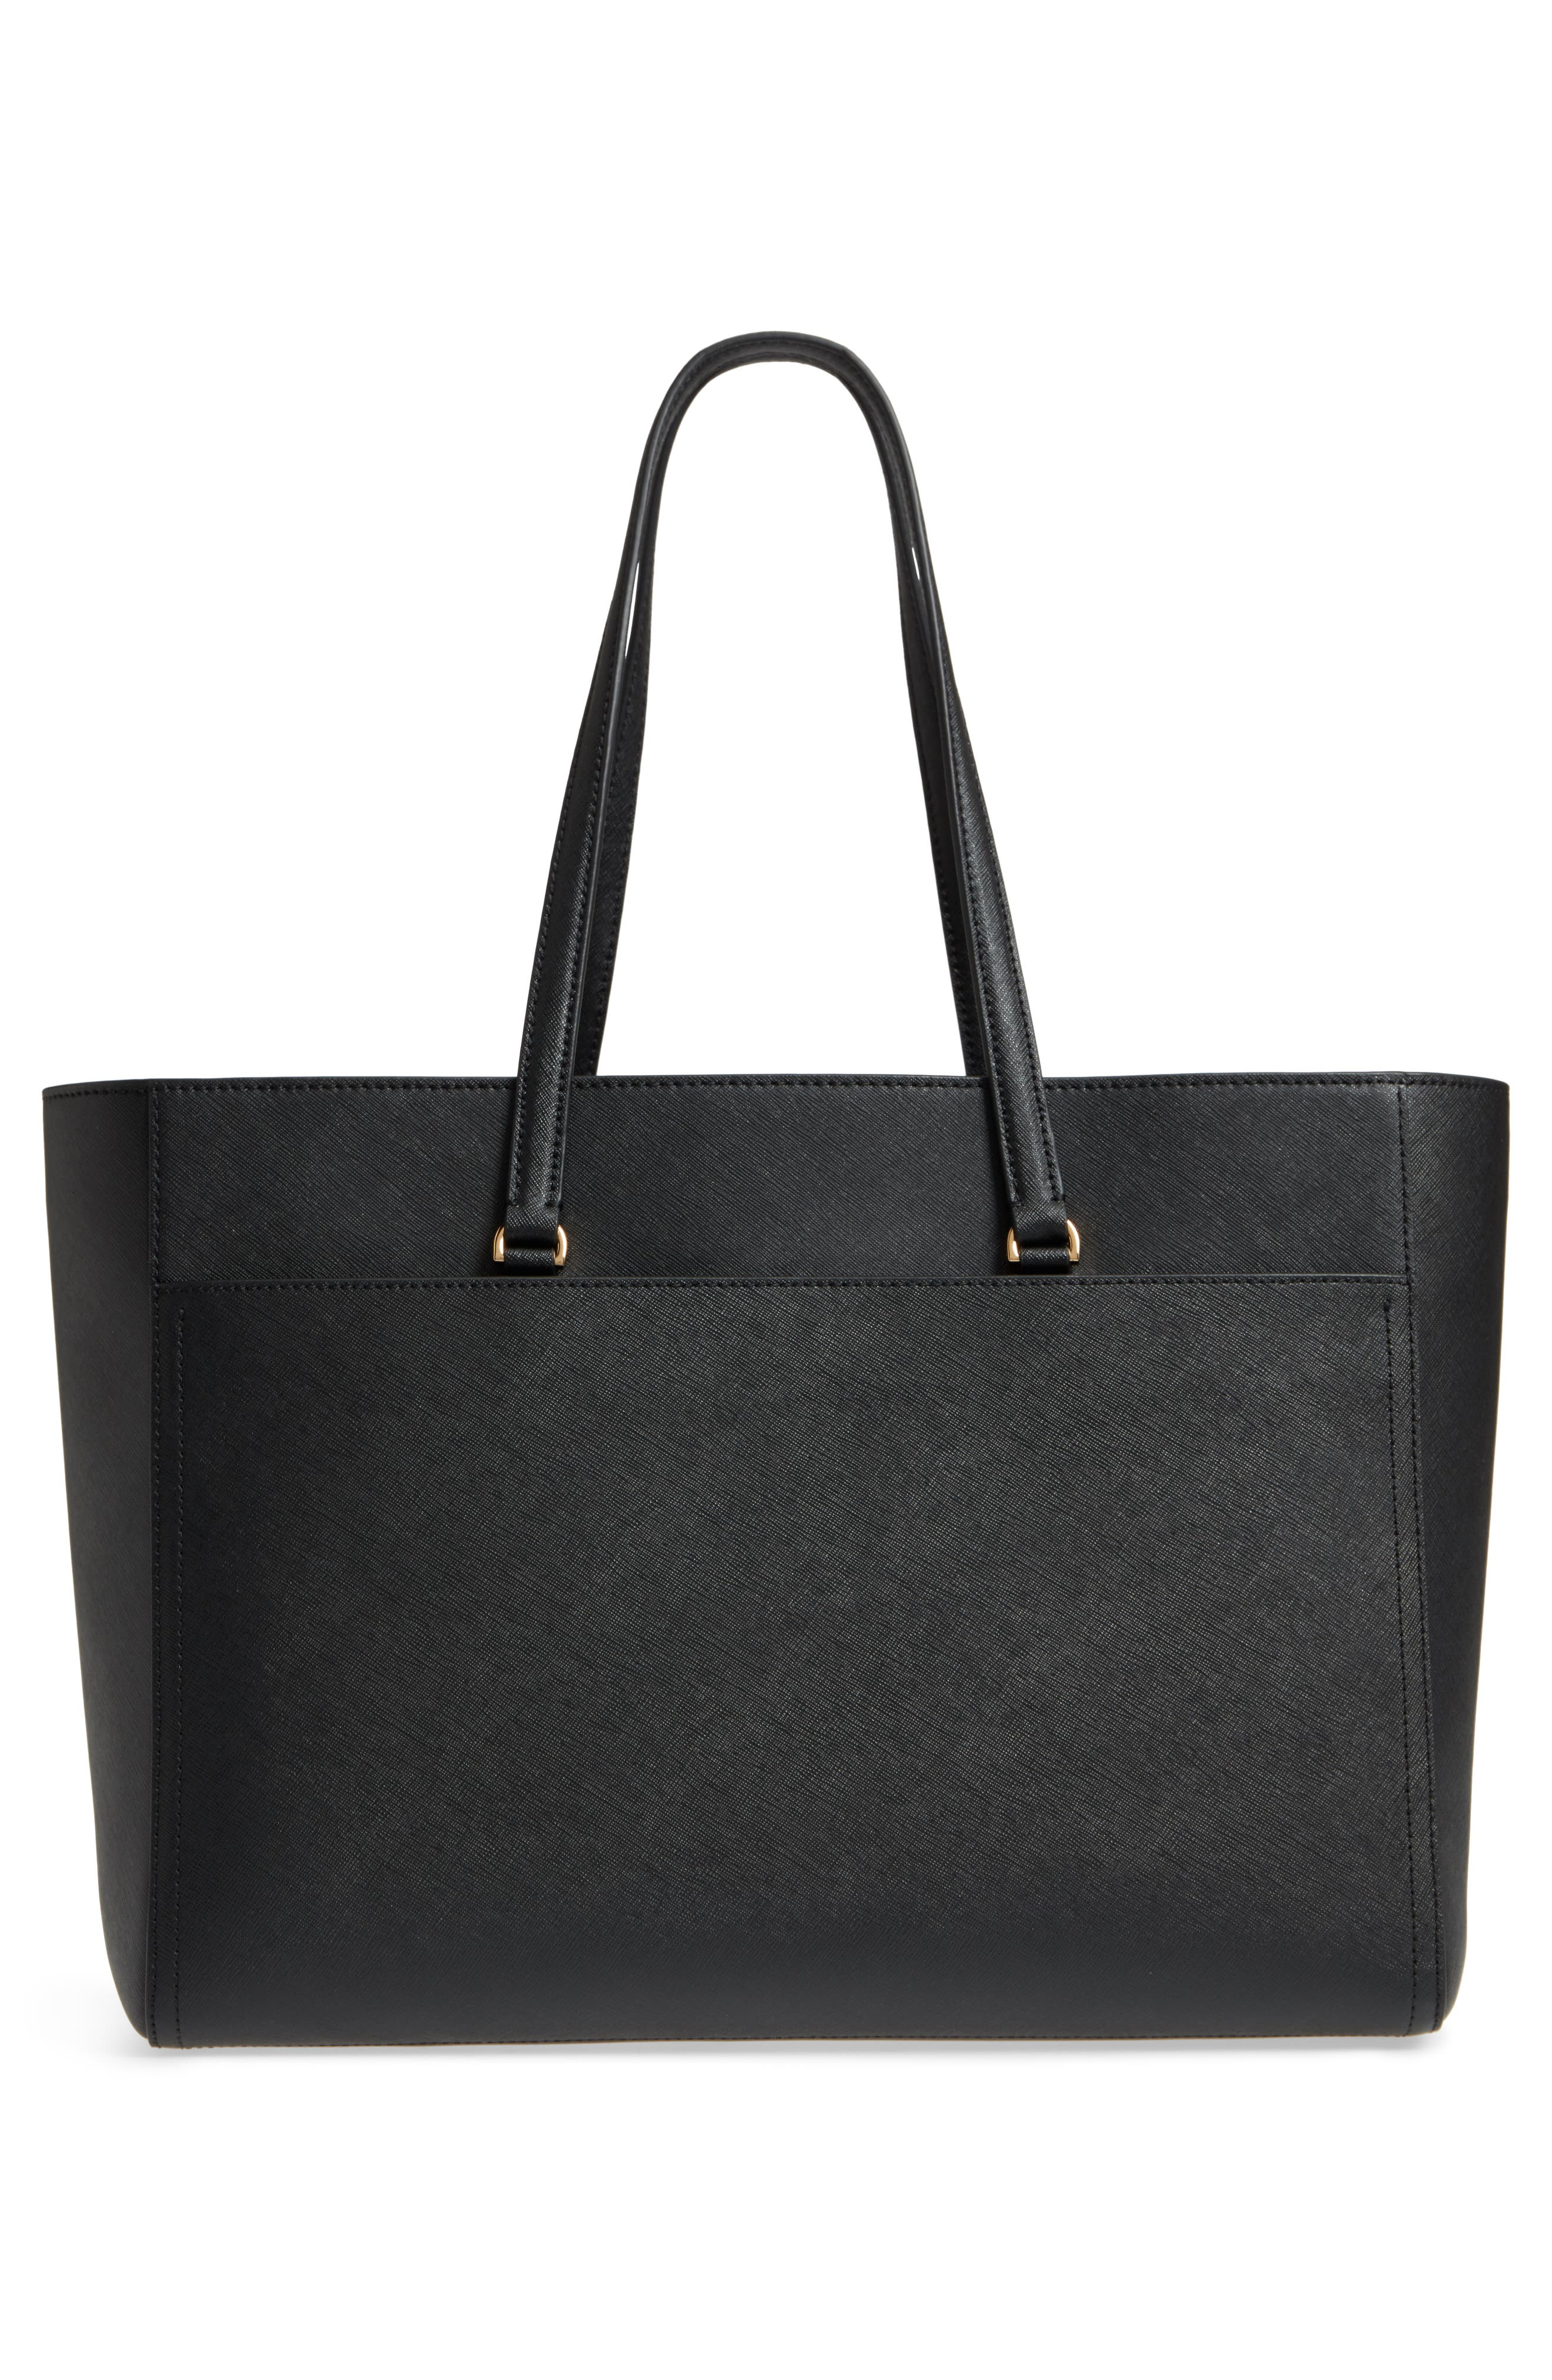 TORY BURCH,                             Robinson Leather Tote,                             Alternate thumbnail 3, color,                             001